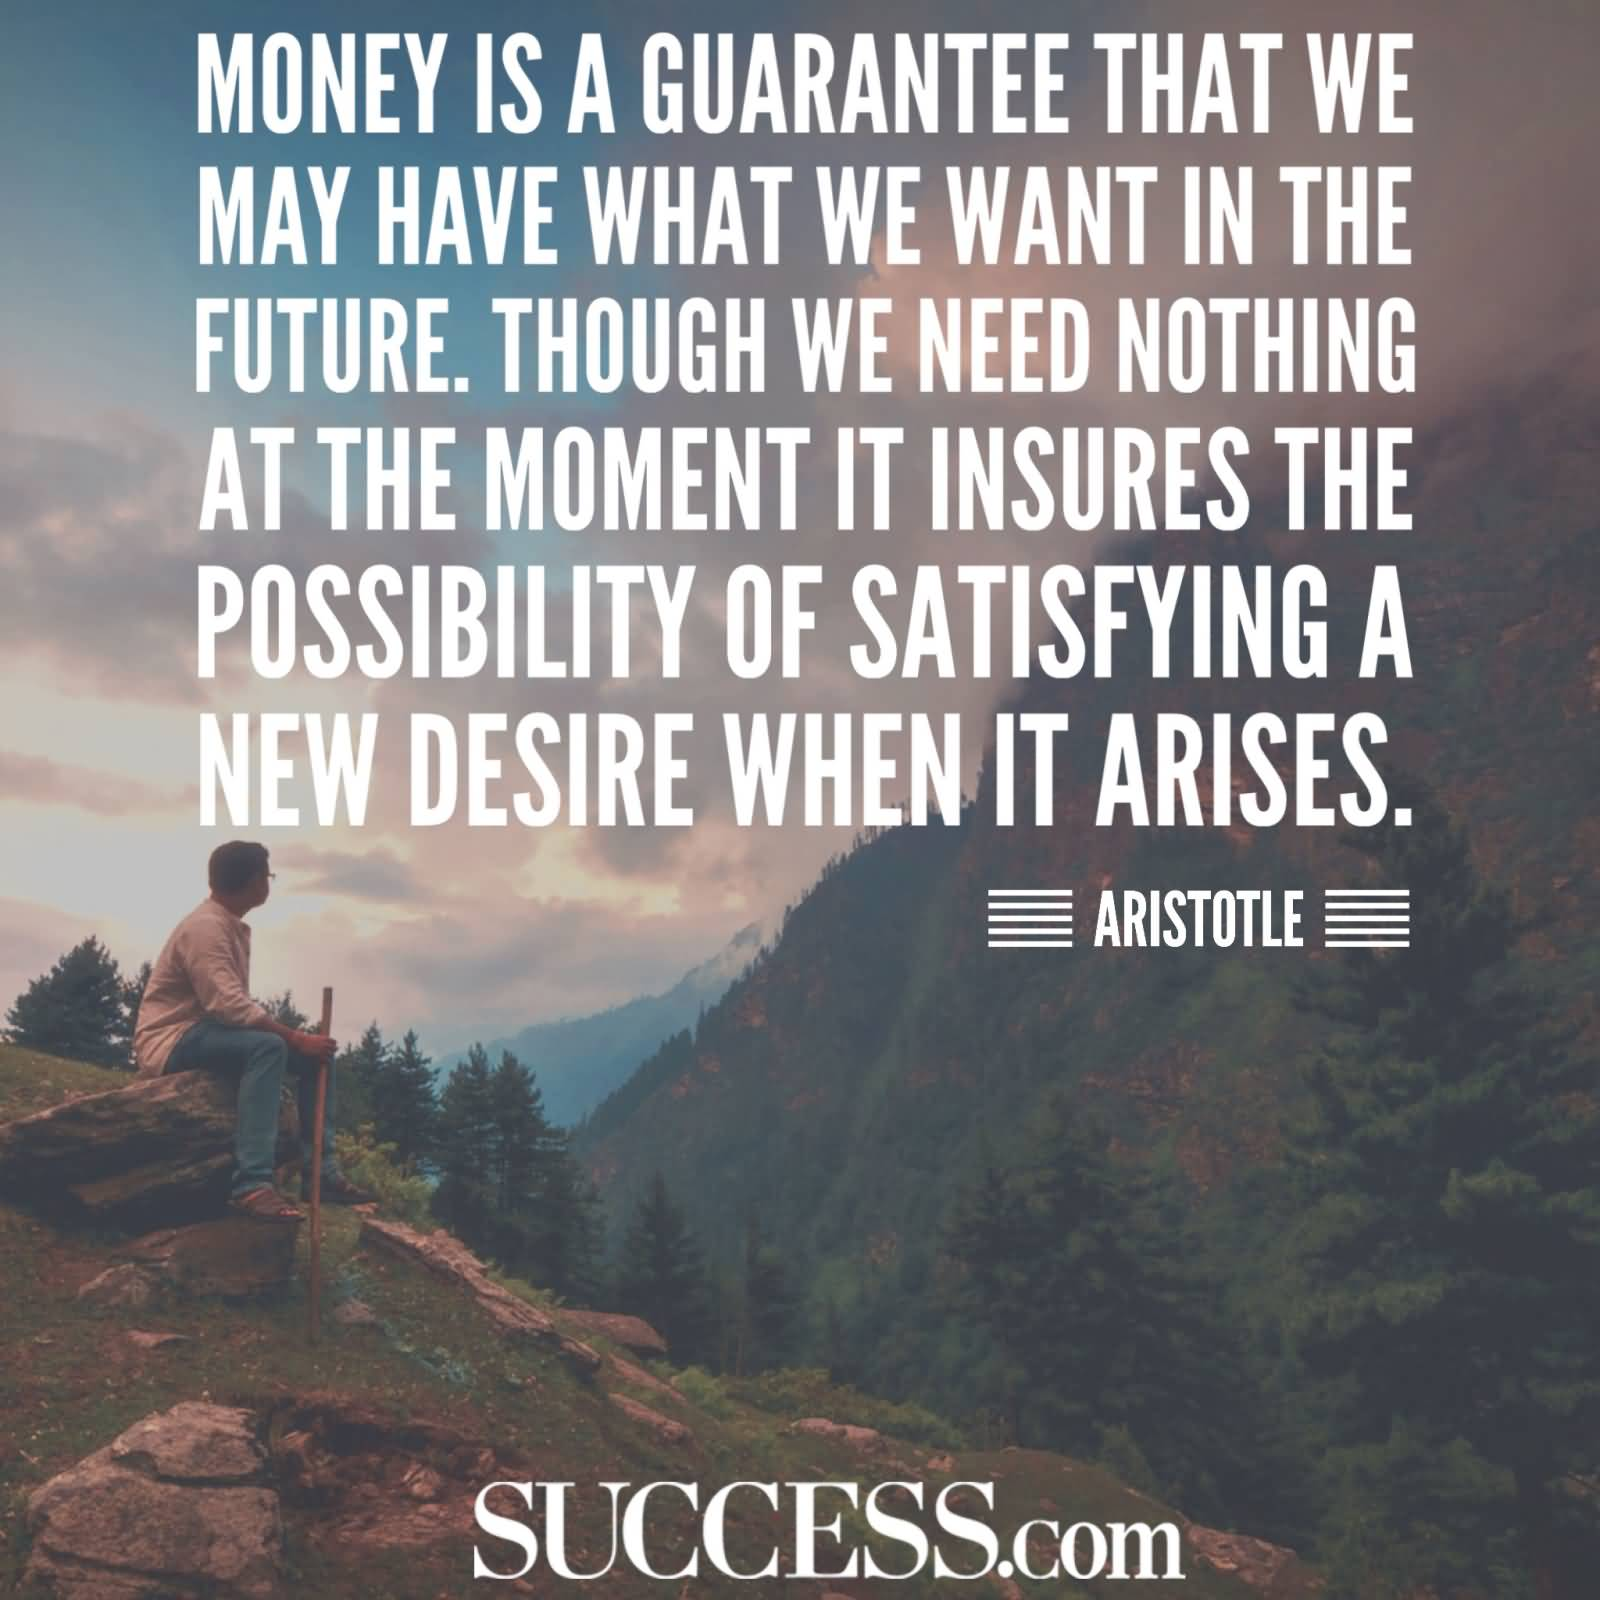 Quotes About The Future And Success: 62 All Time Best Money Quotes And Sayings For Inspiration